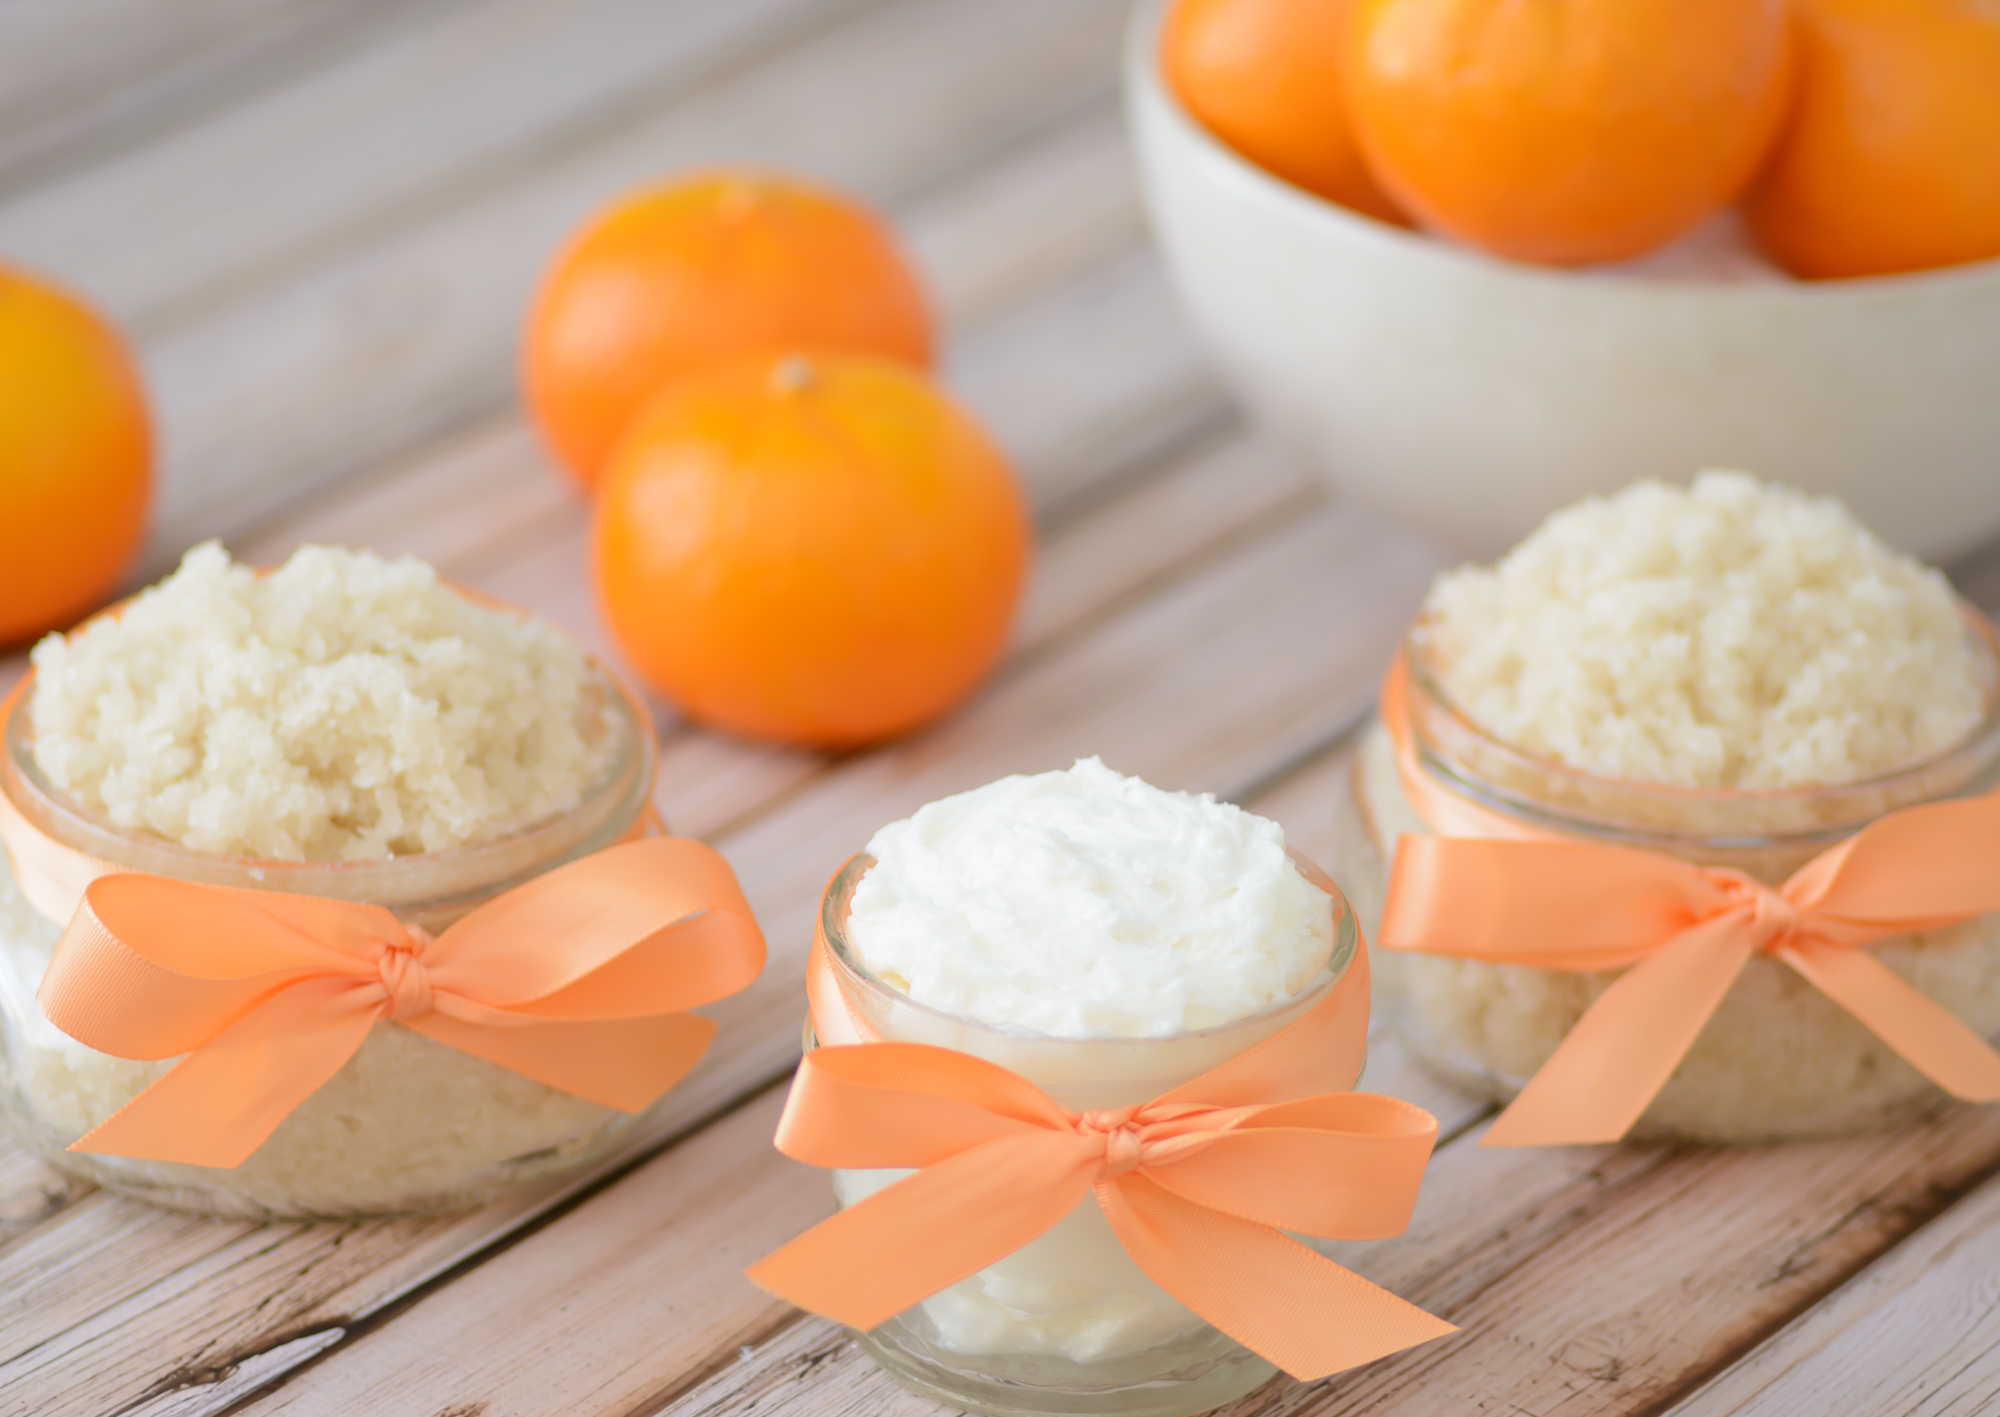 DIY Invigorating Orange Sugar Scrub and Whipped Body Butter. So easy to make and will leave your skin feeling silky and smooth plus give you an aromatic energy boost to start your day!